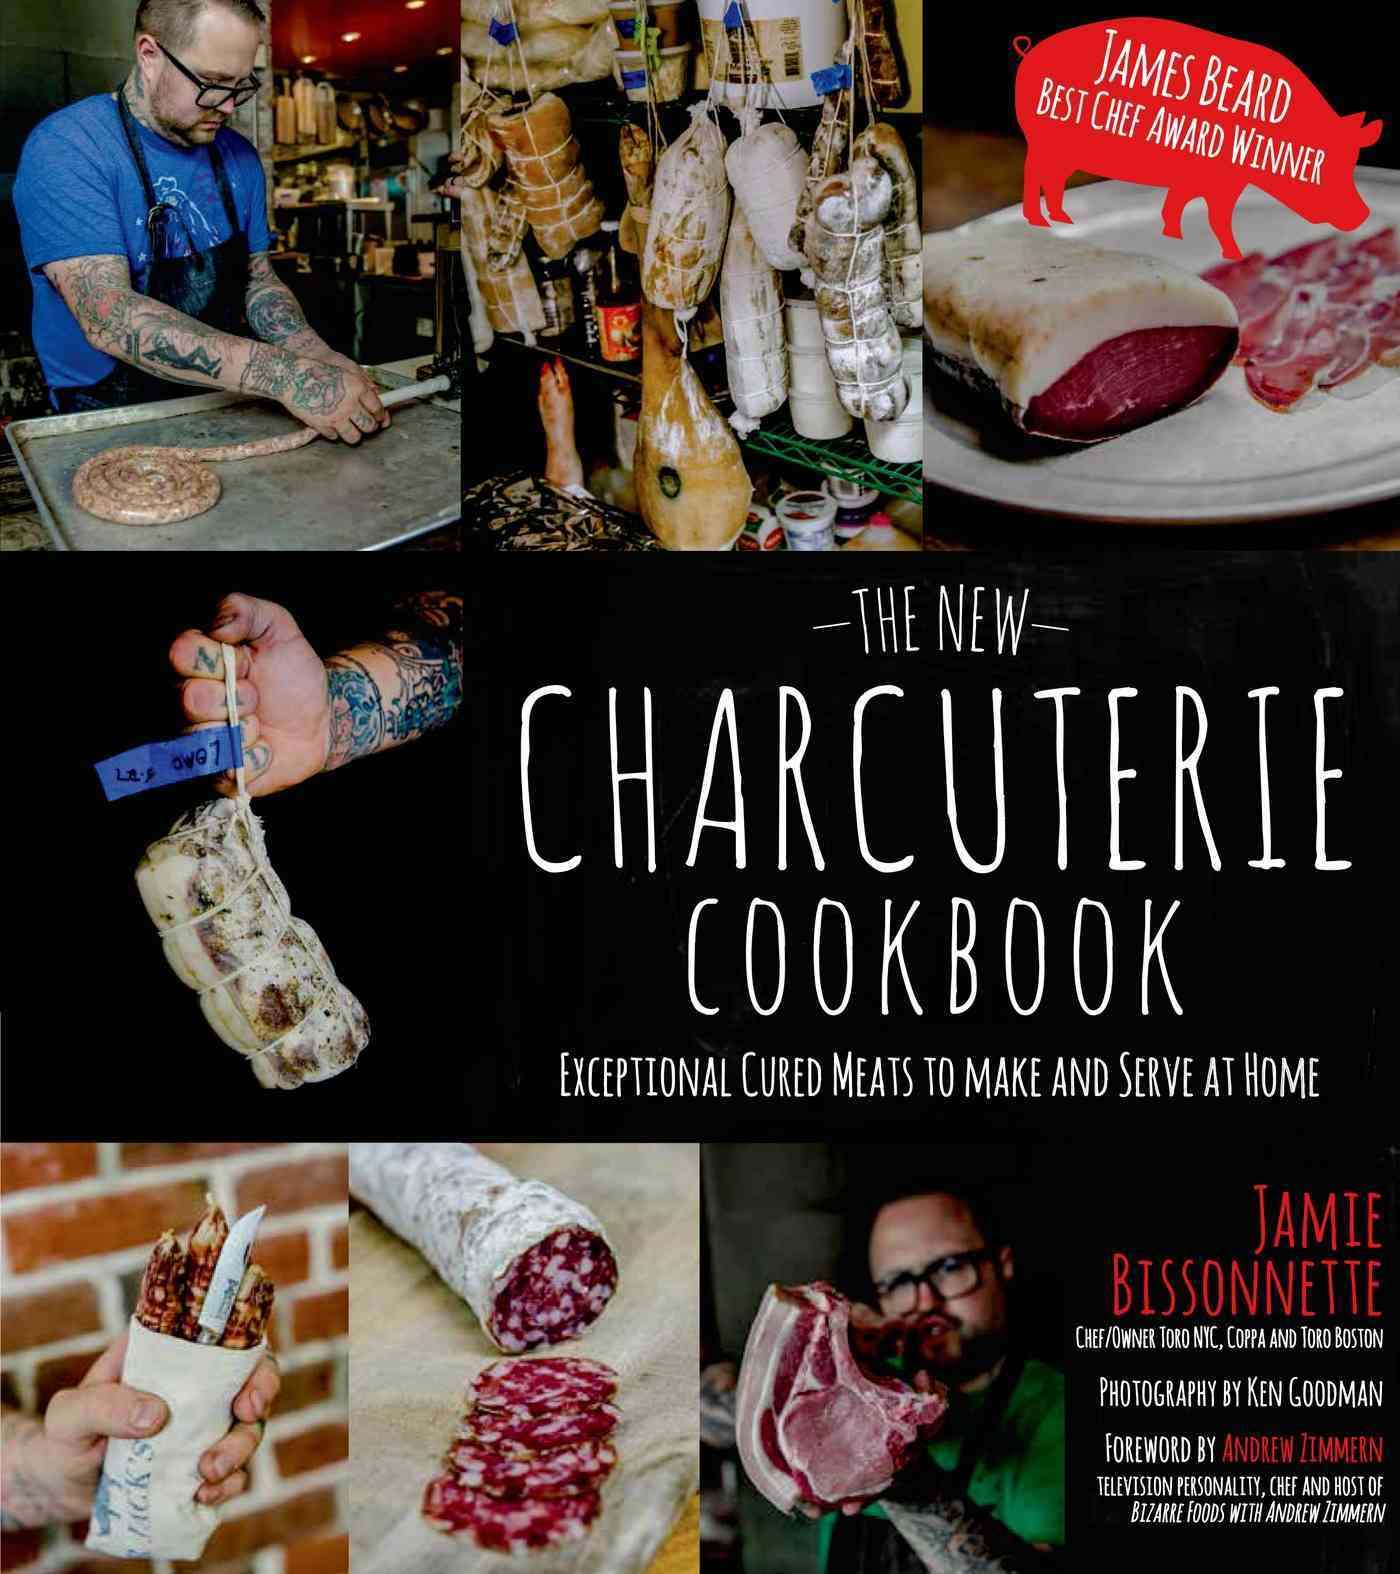 The New Charcuterie Cookbook: Exceptional Cured Meats to Make and Serve at Home (Paperback)